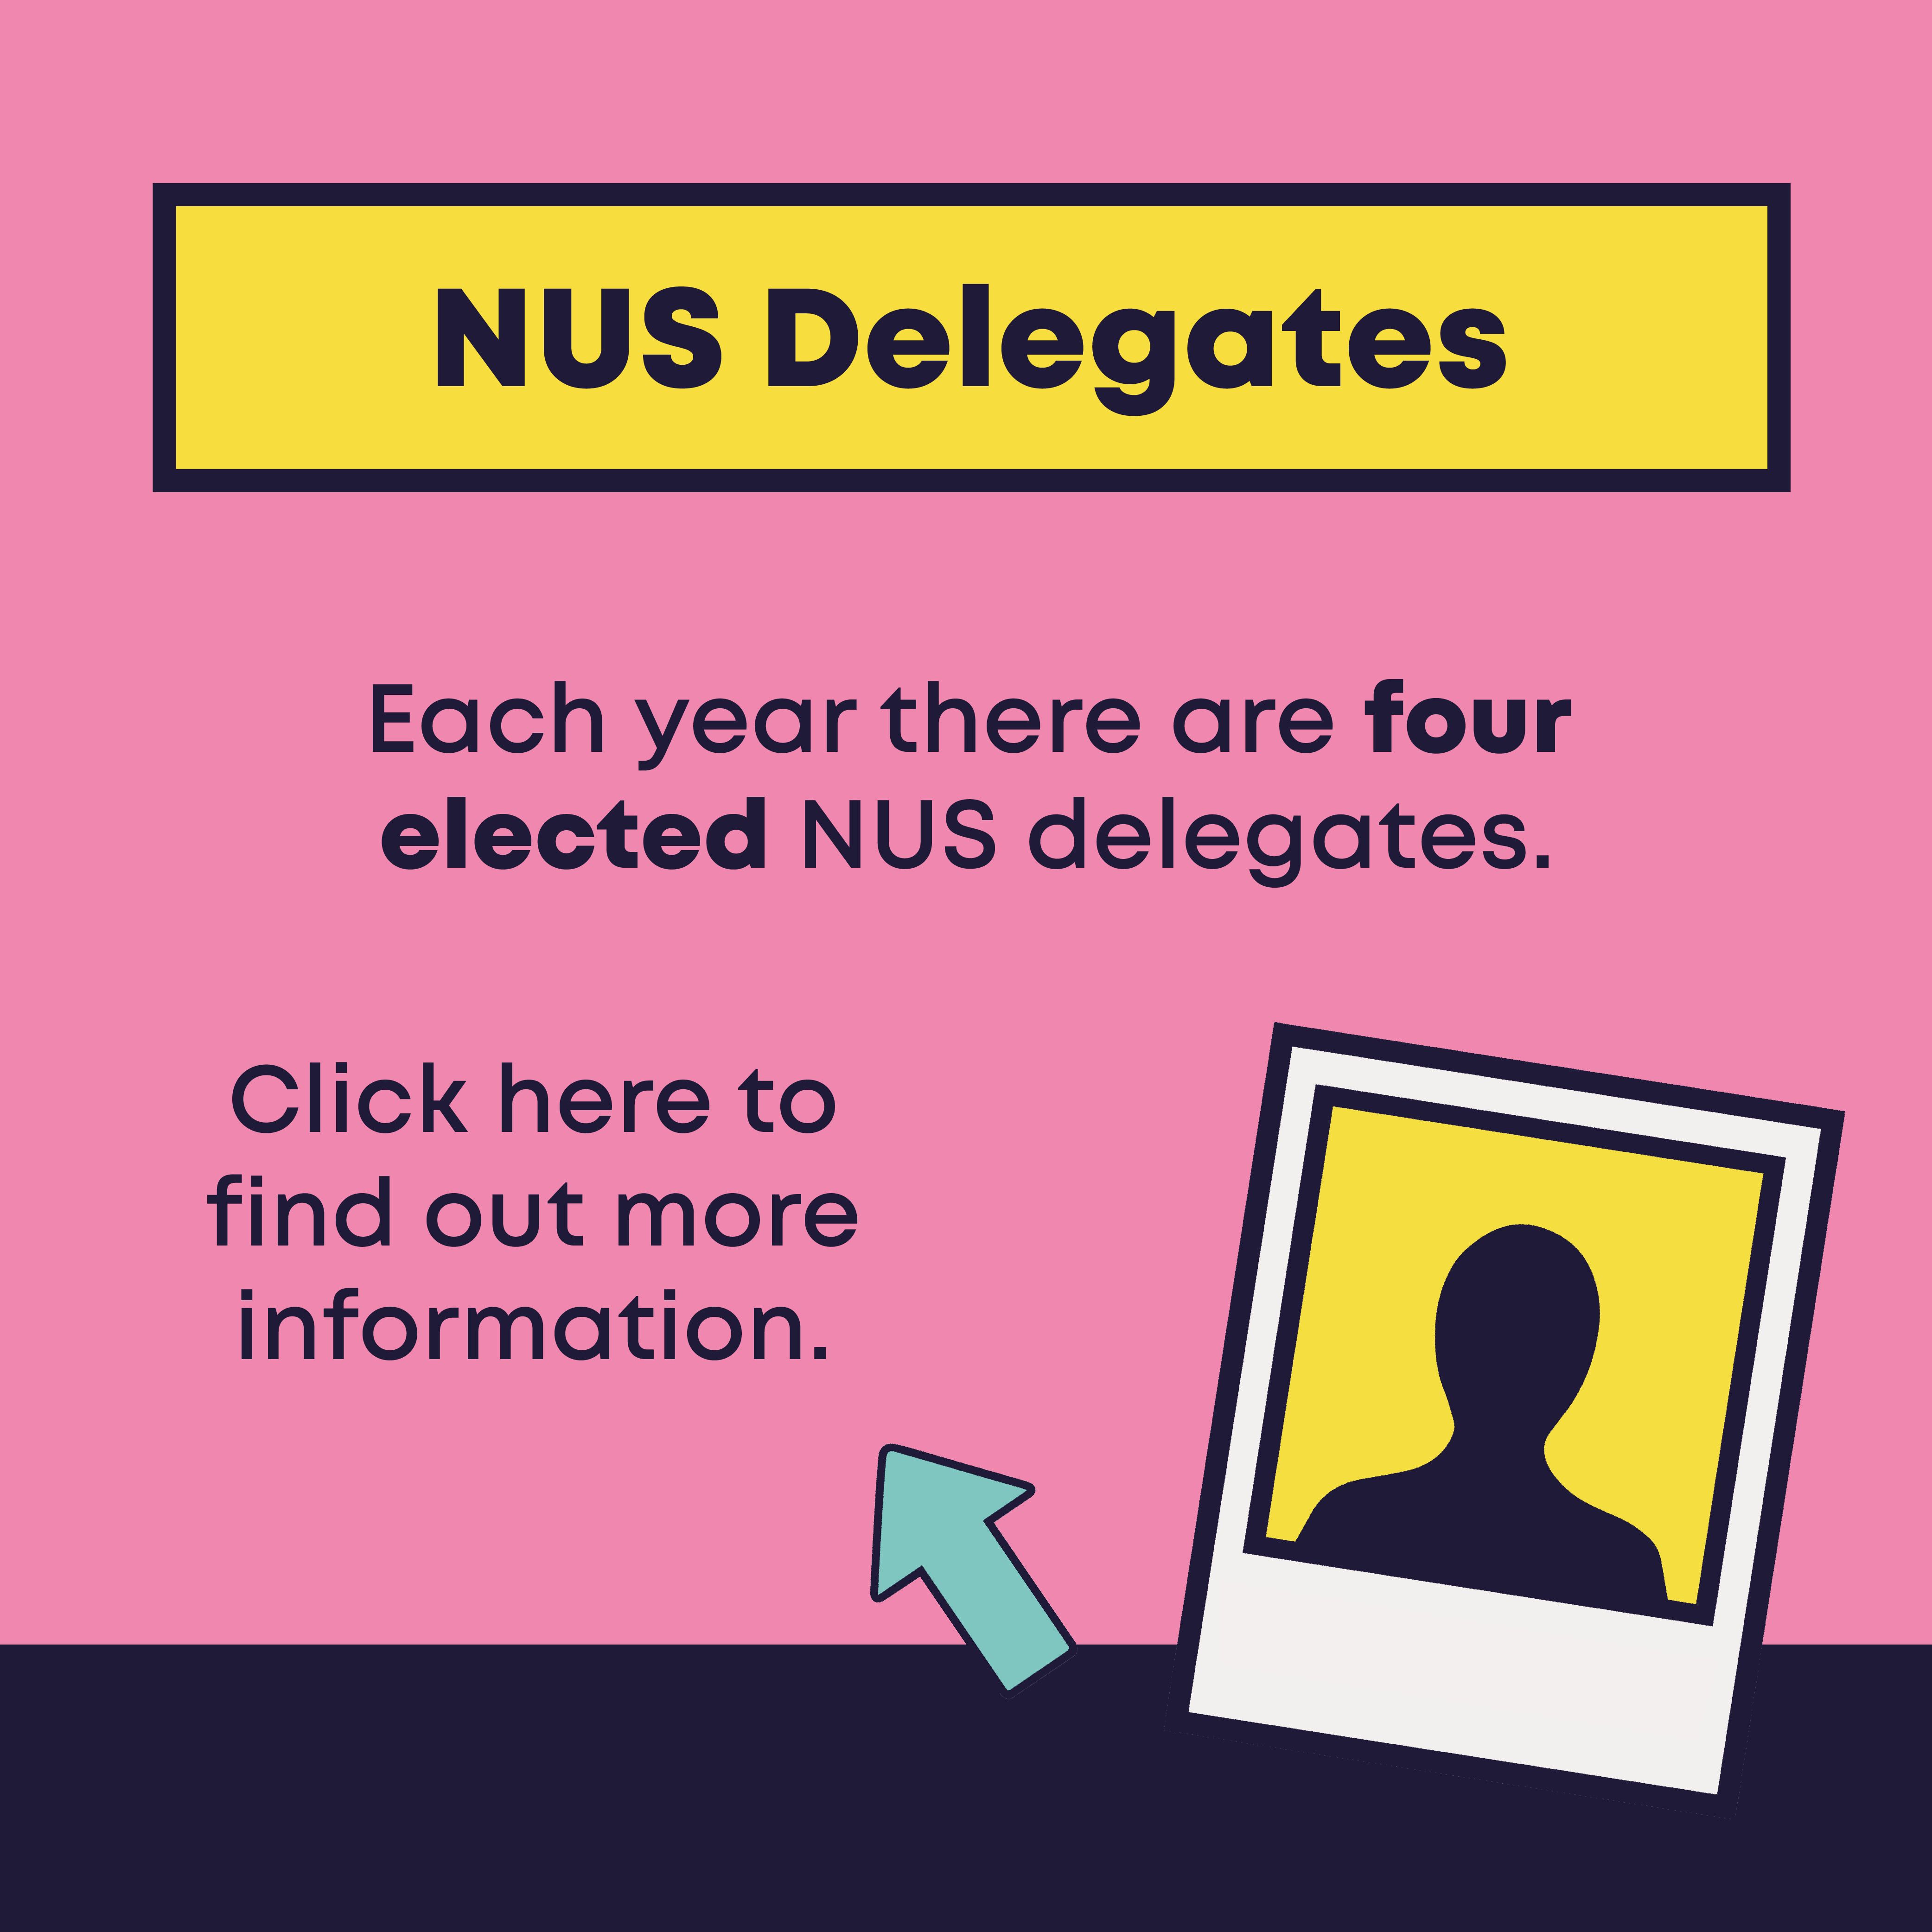 NUS Delegates. Each year there are four elected NUS delegates.Click here to find out more information